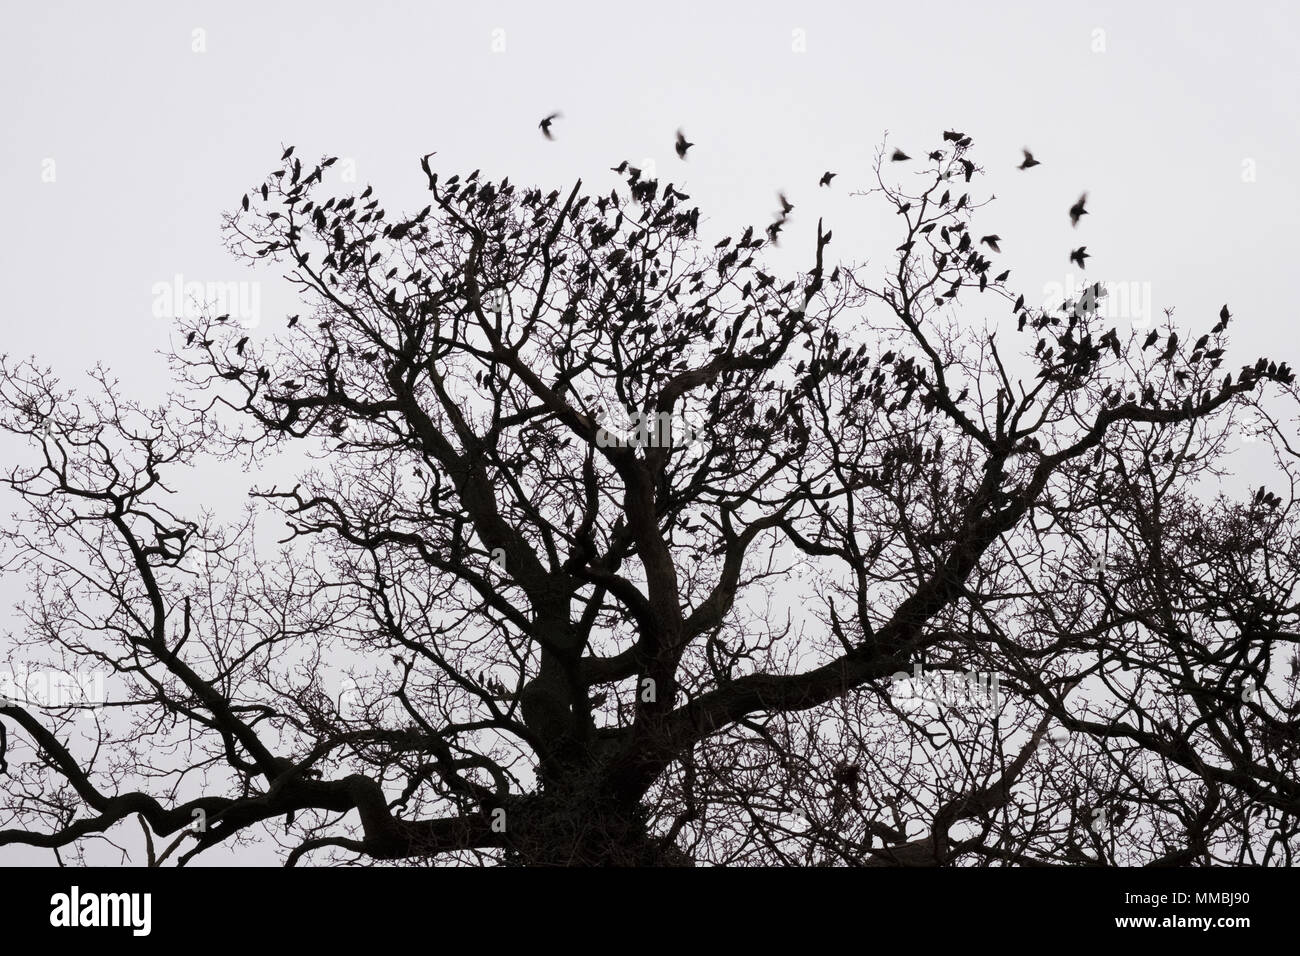 A winter garden, crown of a tree against a grey sky with birds flying past. - Stock Image